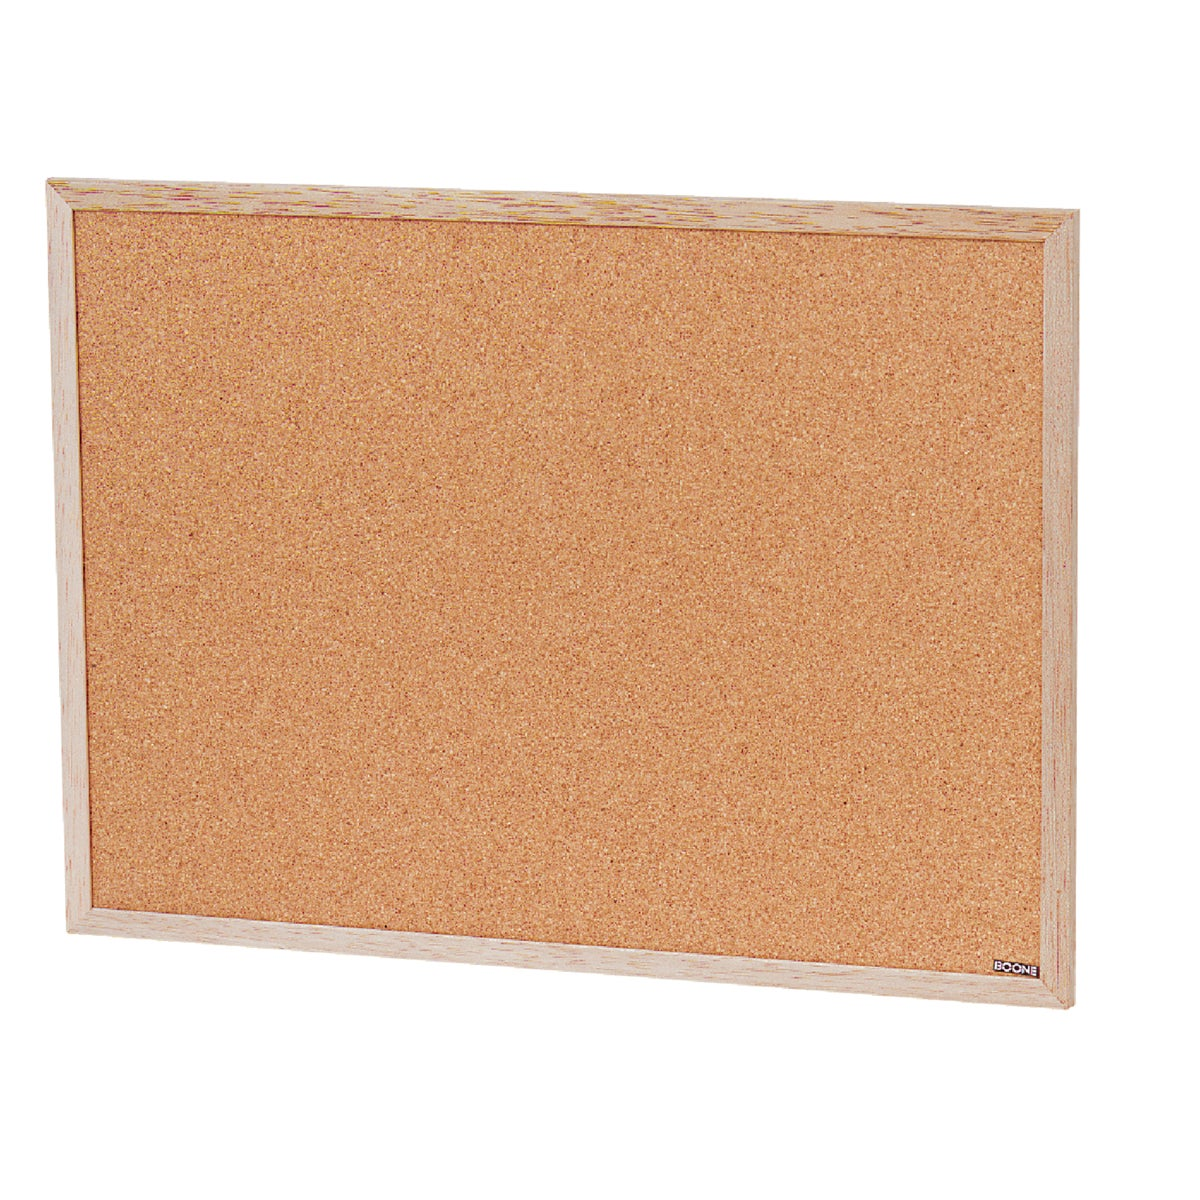 23X17 CORK BOARD - 9162 by Board Dudes Inc